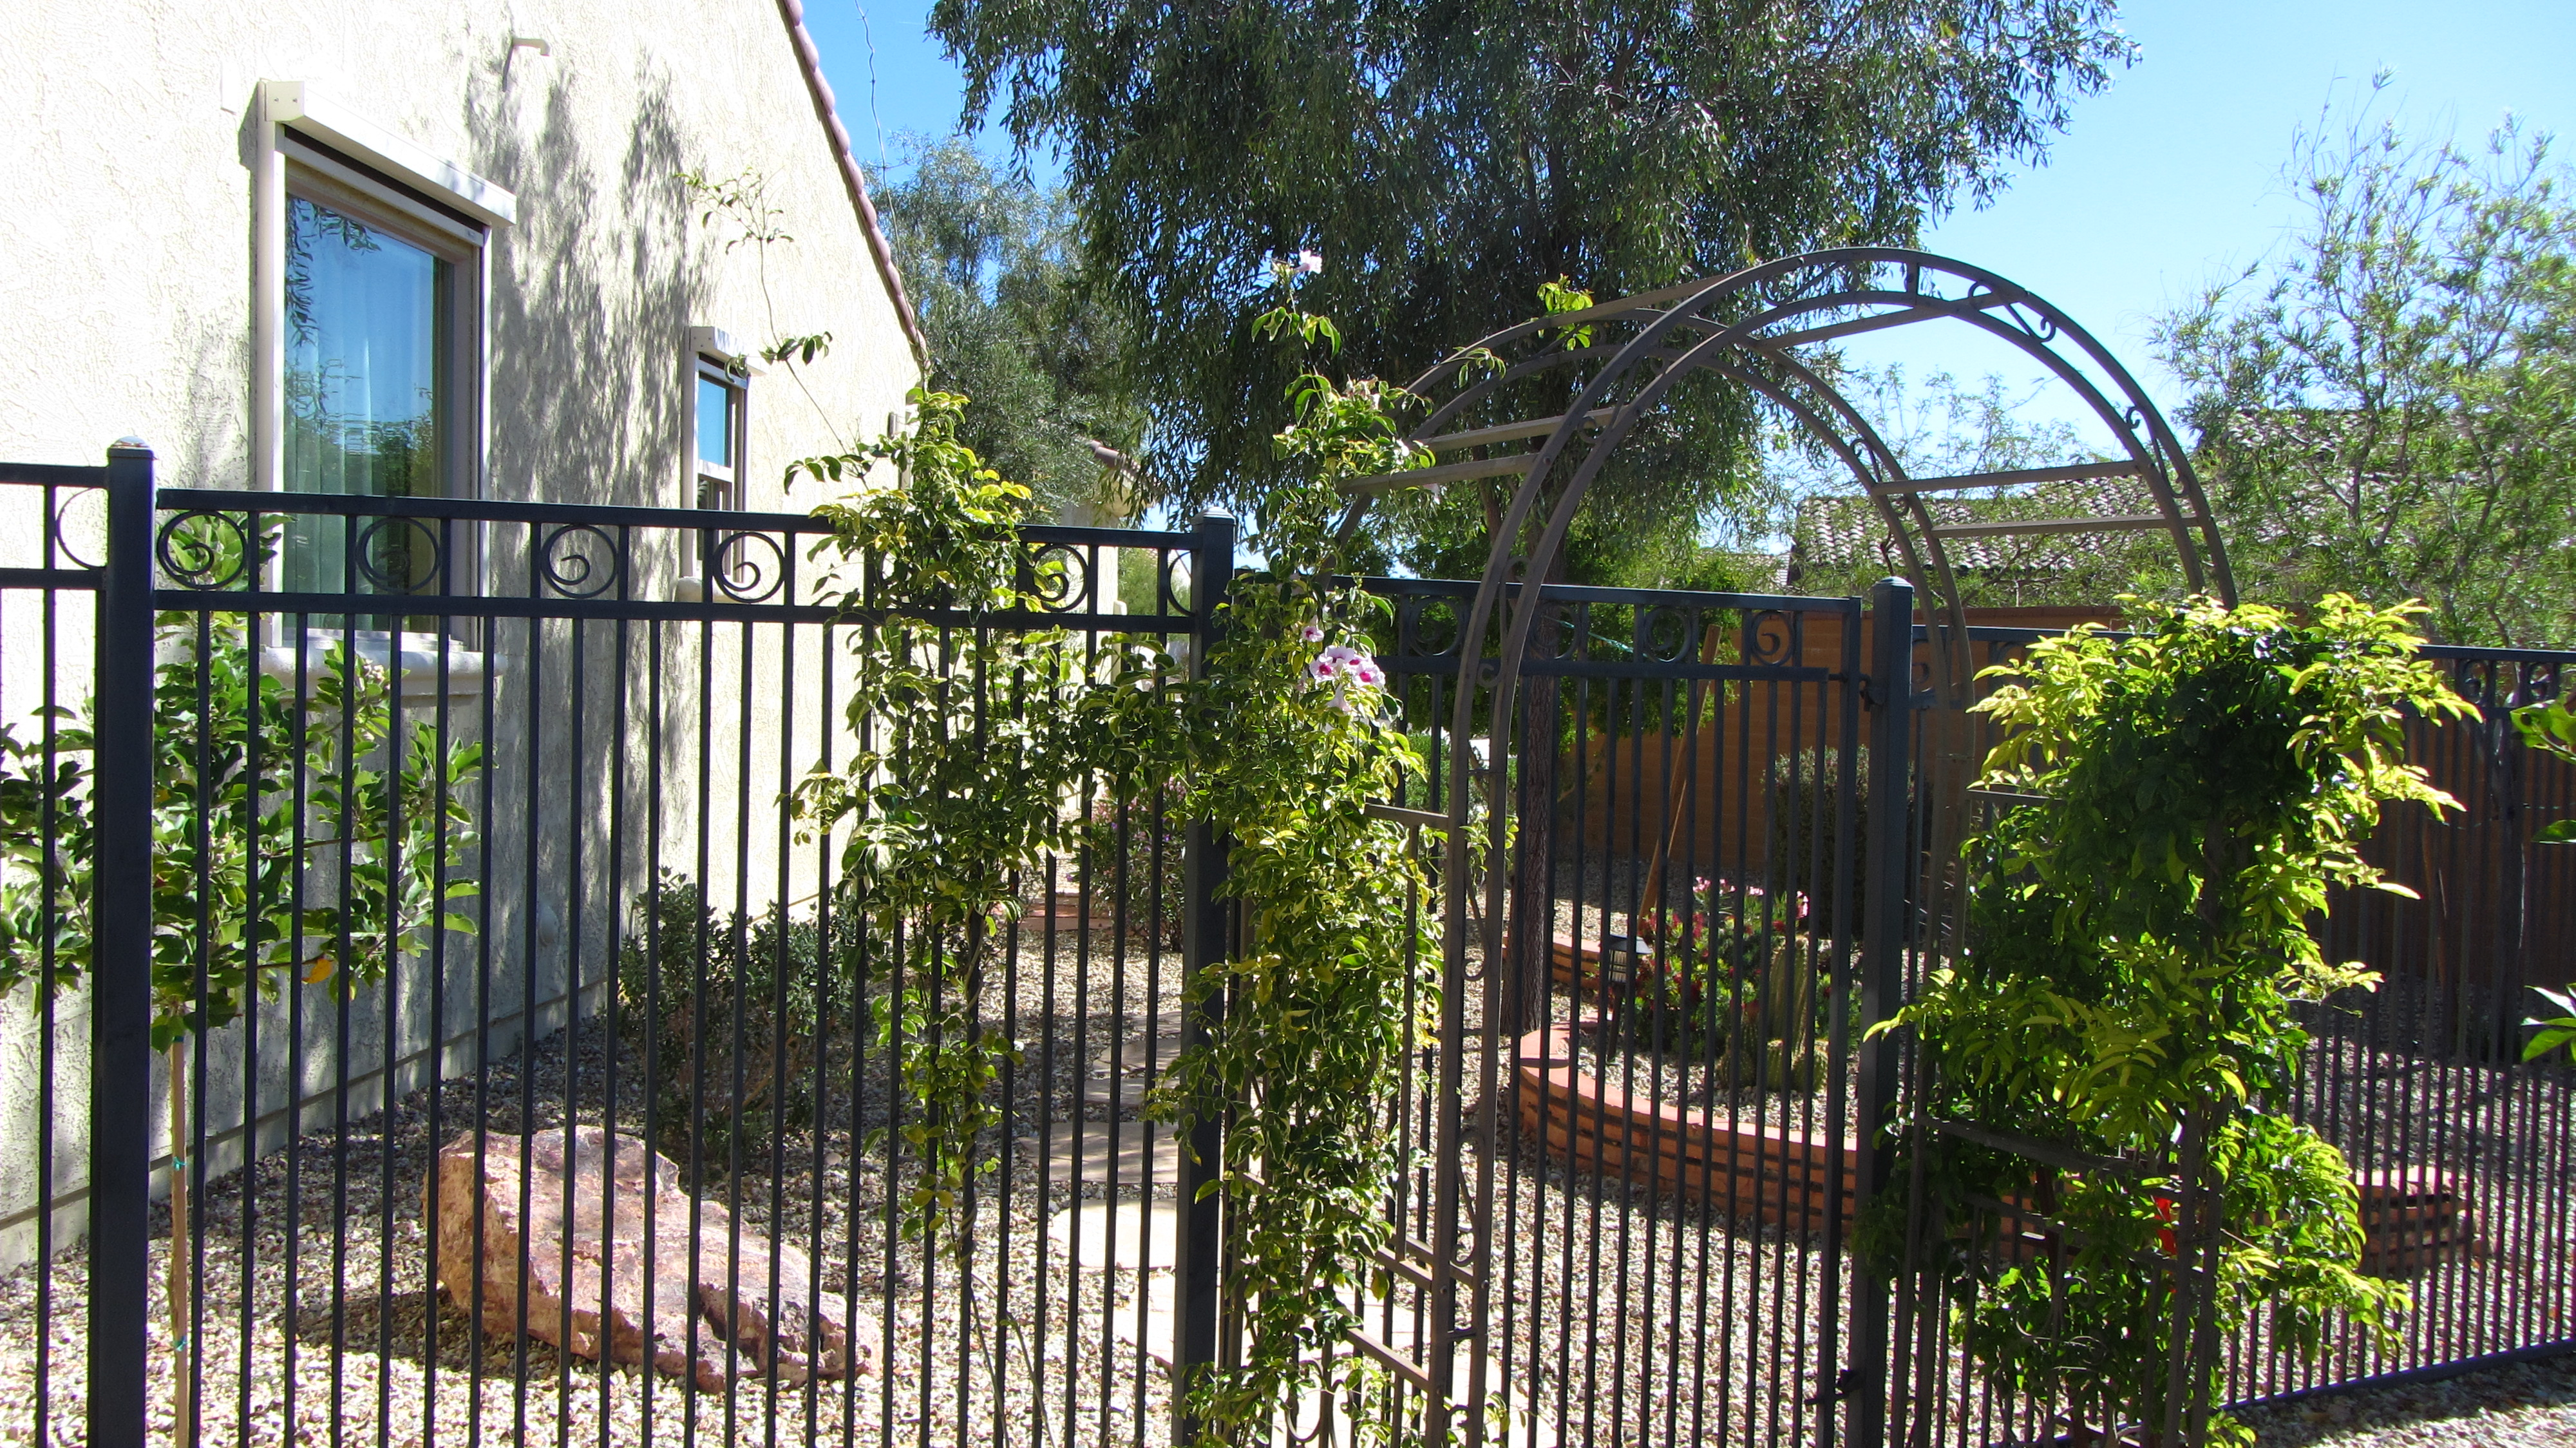 retirement munities why no block wall fences home fencing